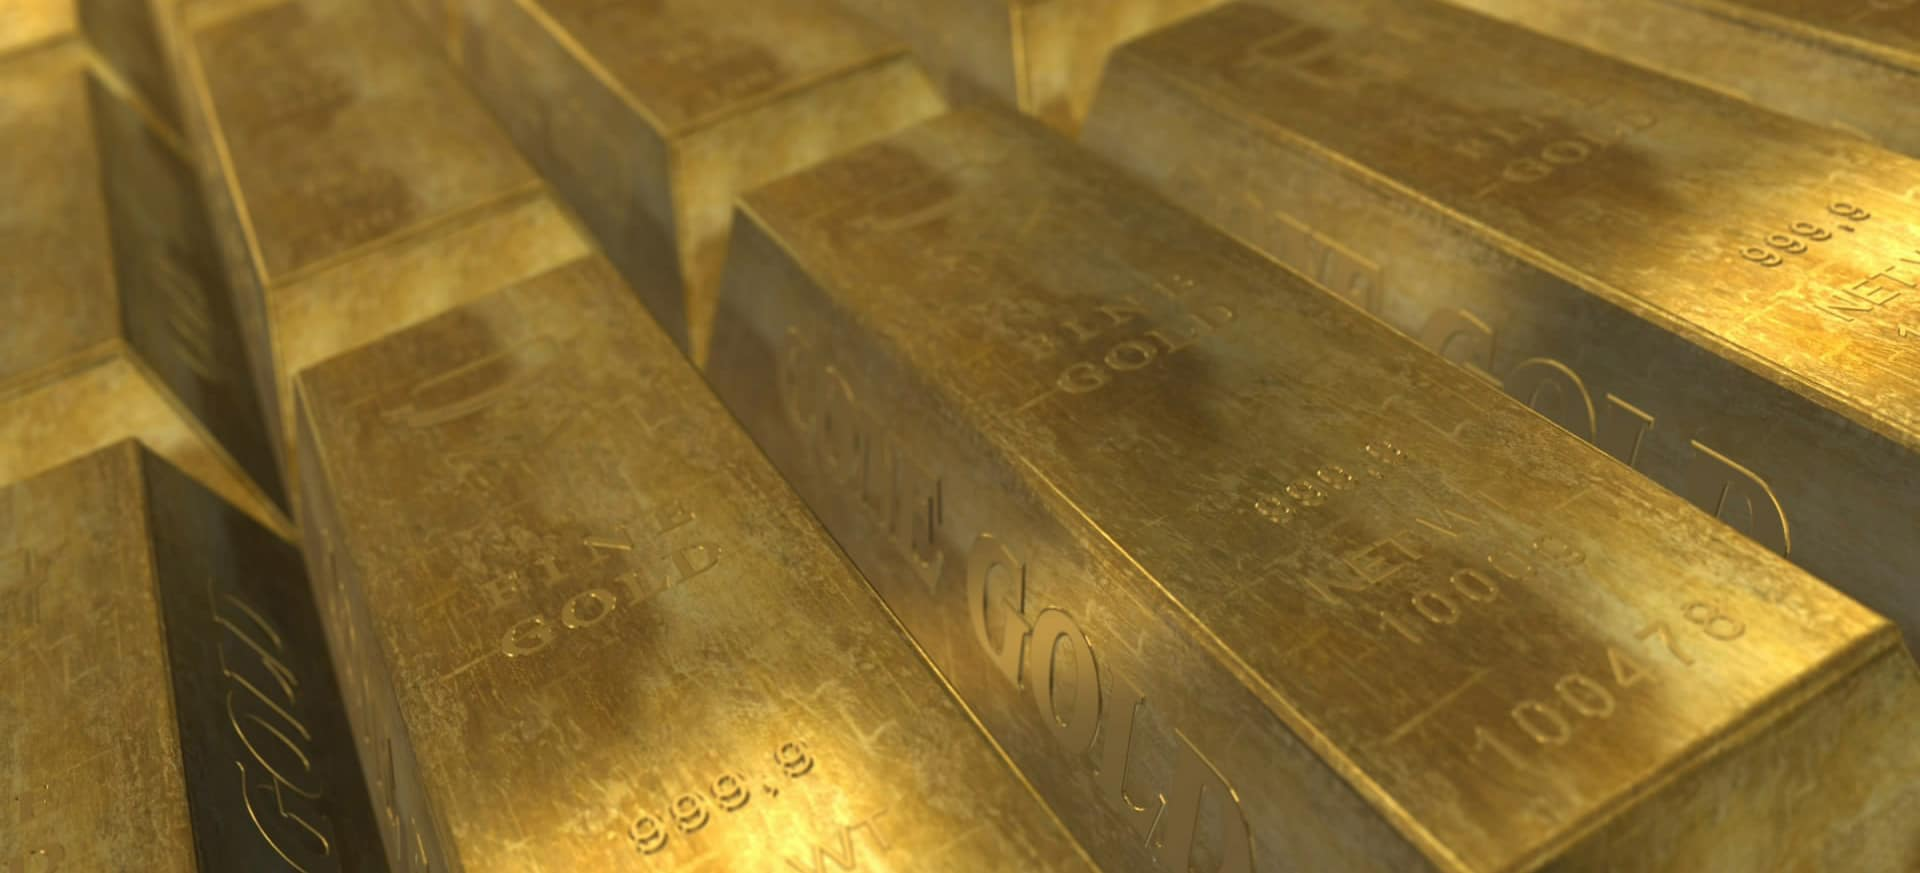 Gold vs Bitcoin– the Investment Debate